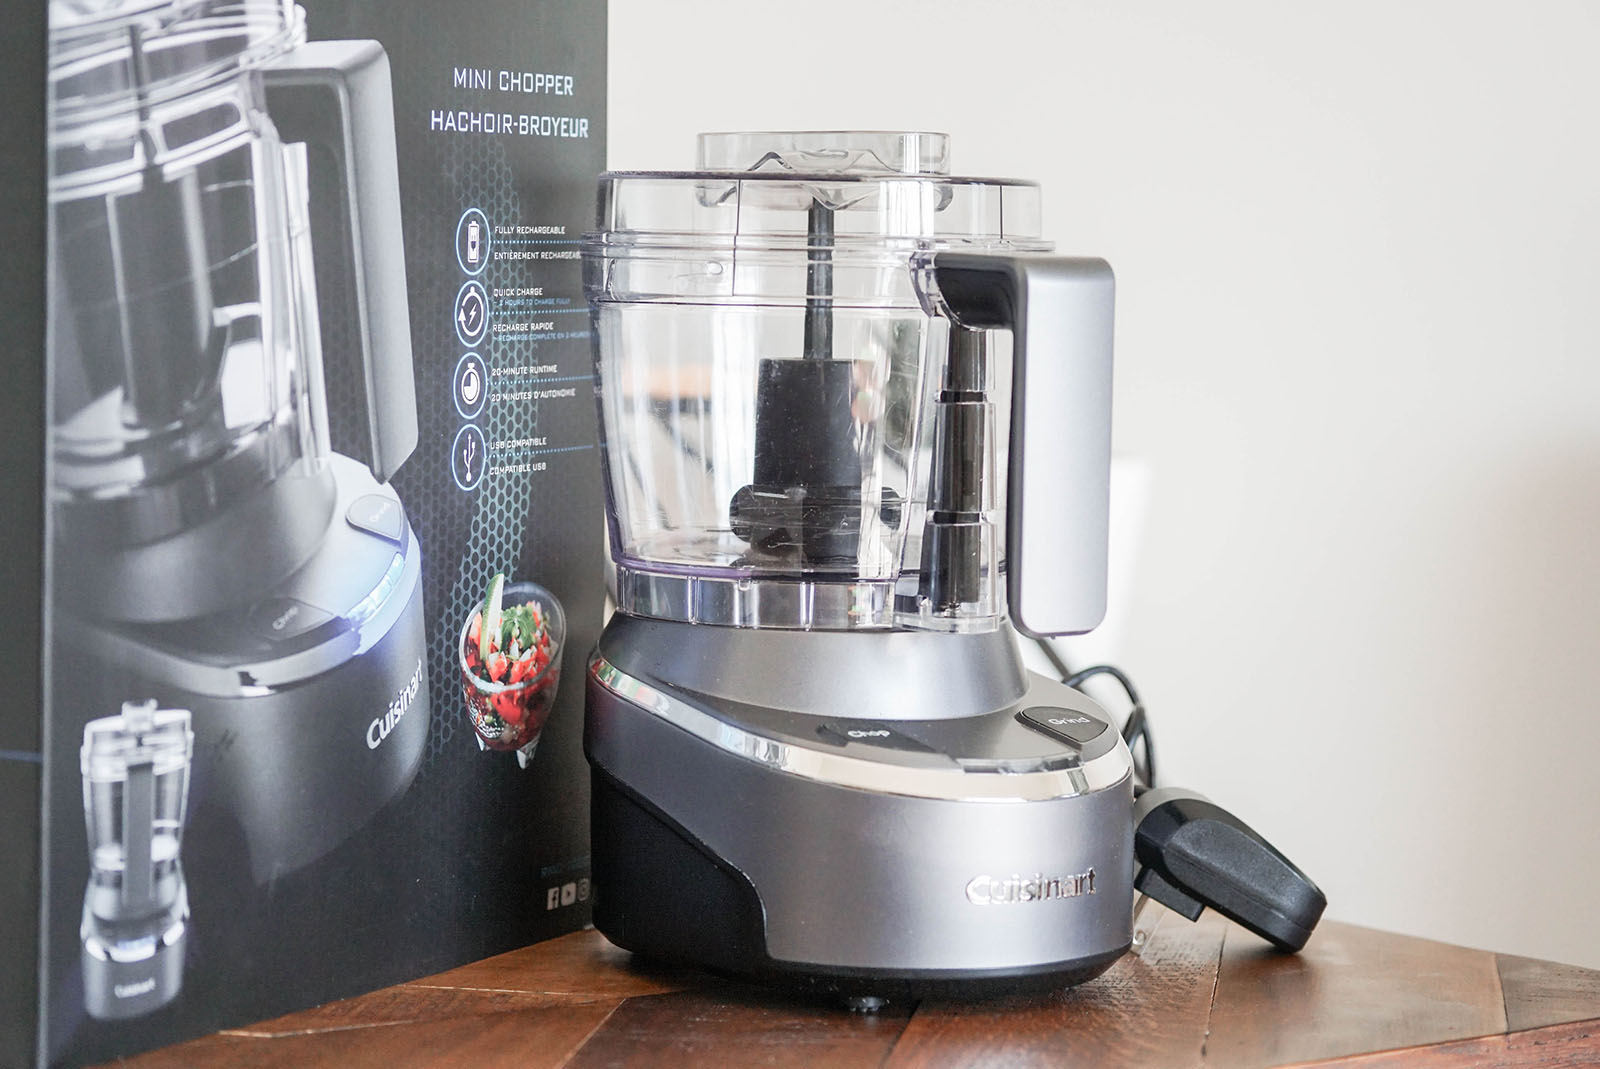 What's in the box of the Cuisinart Cordless Food Chopper